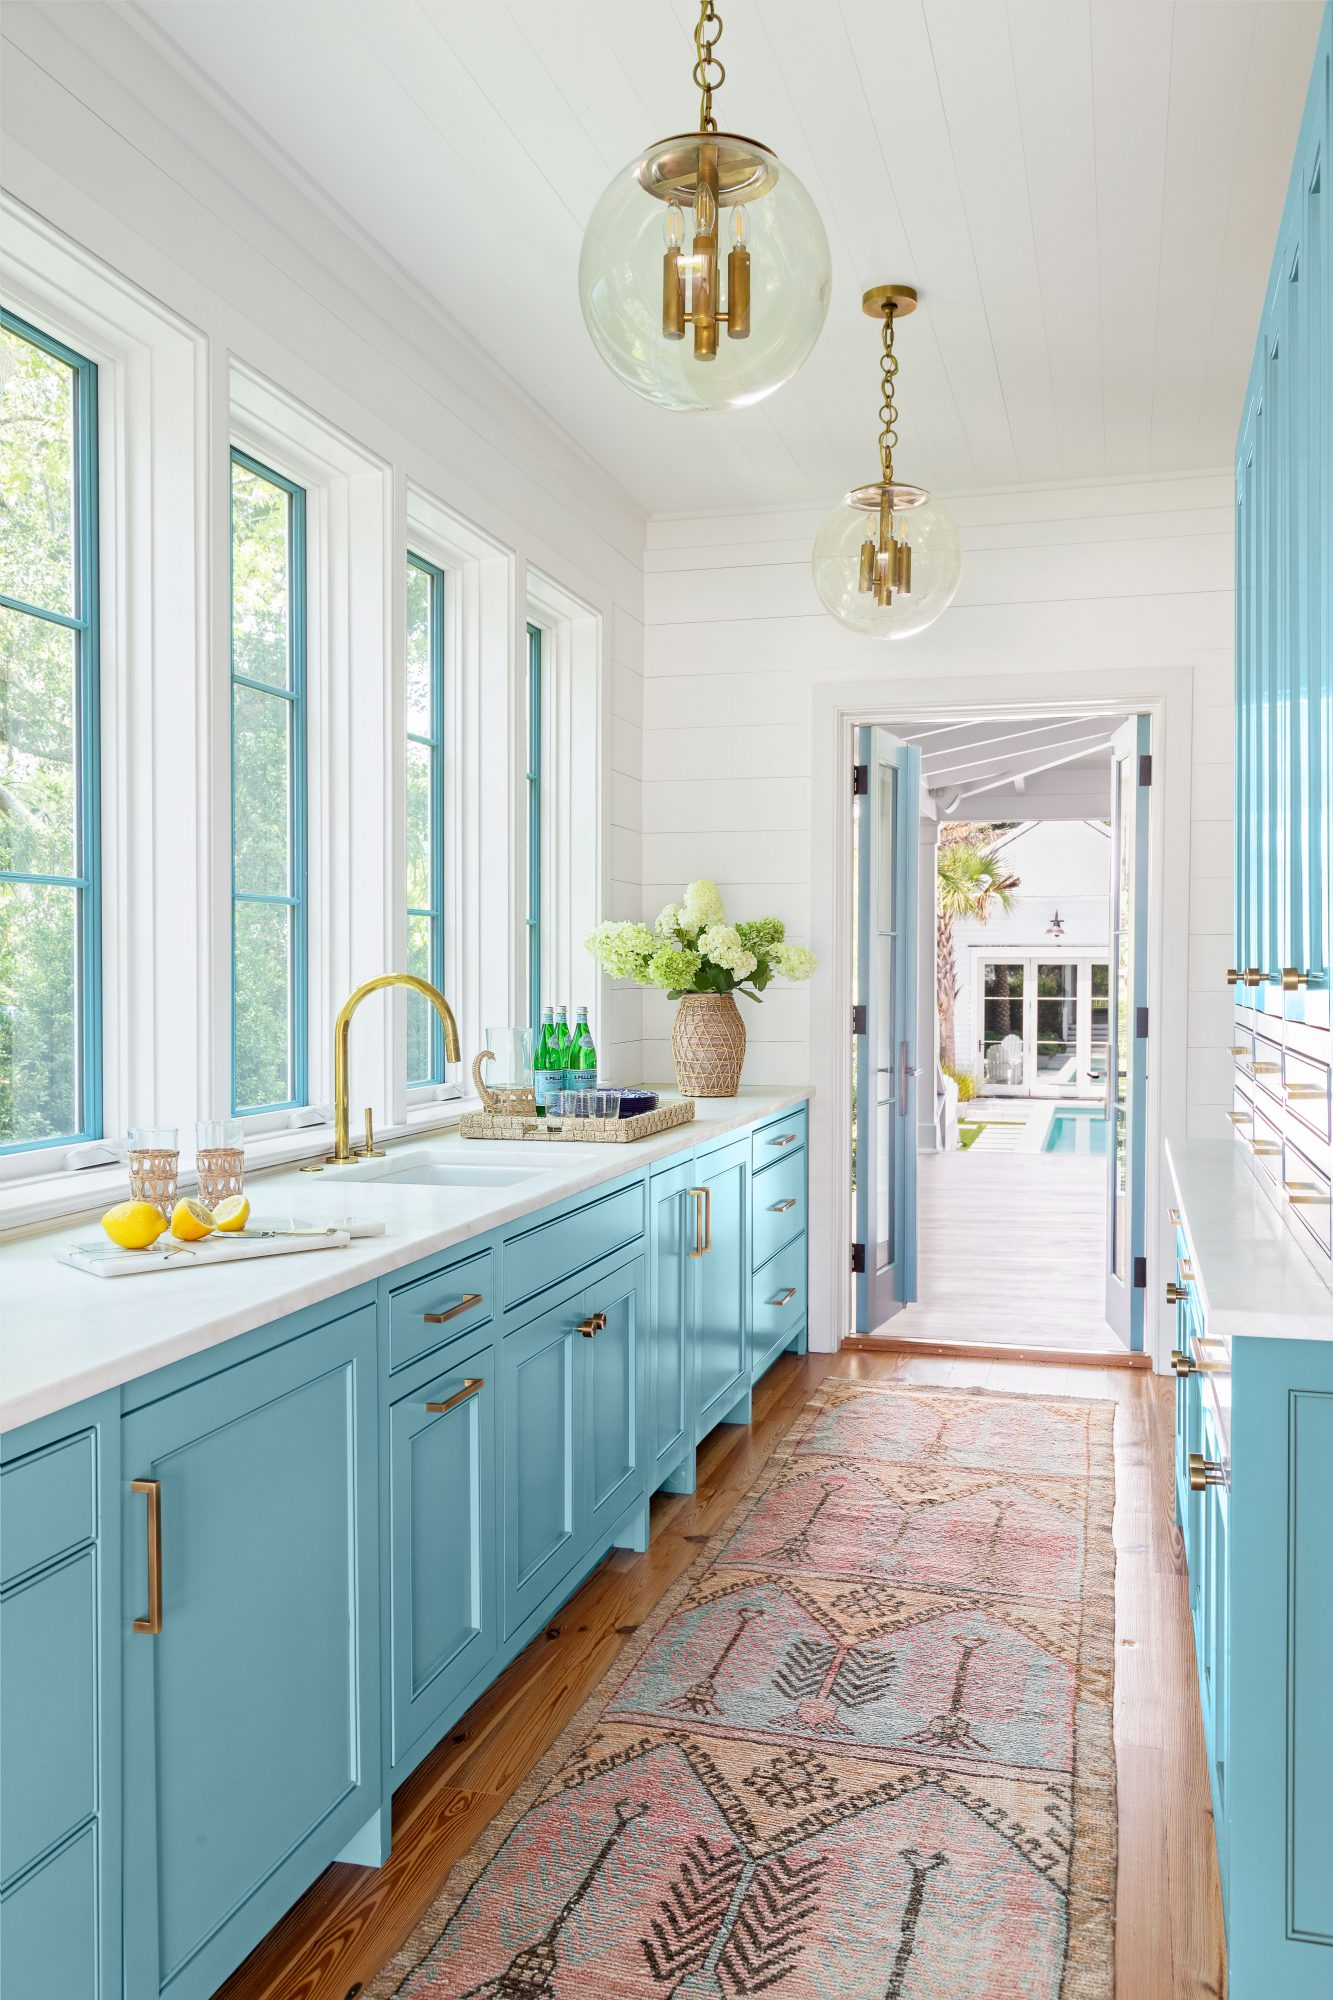 Galley kitchen with blue cabinetry and white walls